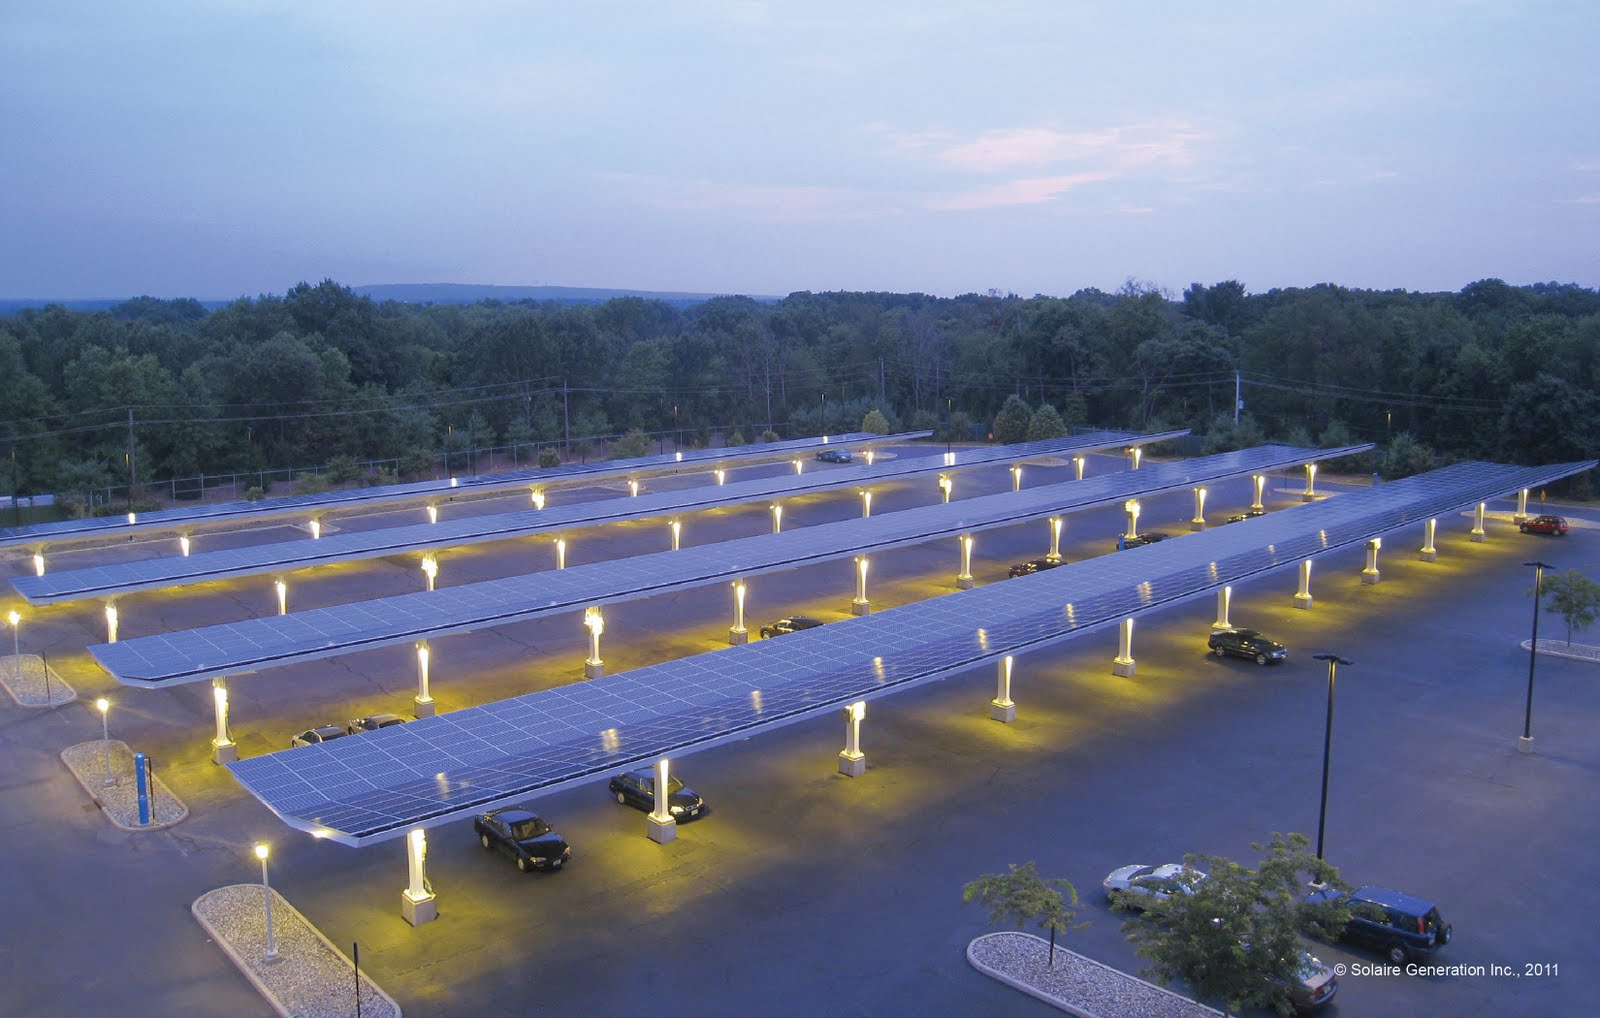 Solaireu0027s Parking Canopies a Cool Solution to Hot Lots & The Green Skeptic: Solaireu0027s Parking Canopies a Cool Solution to ...